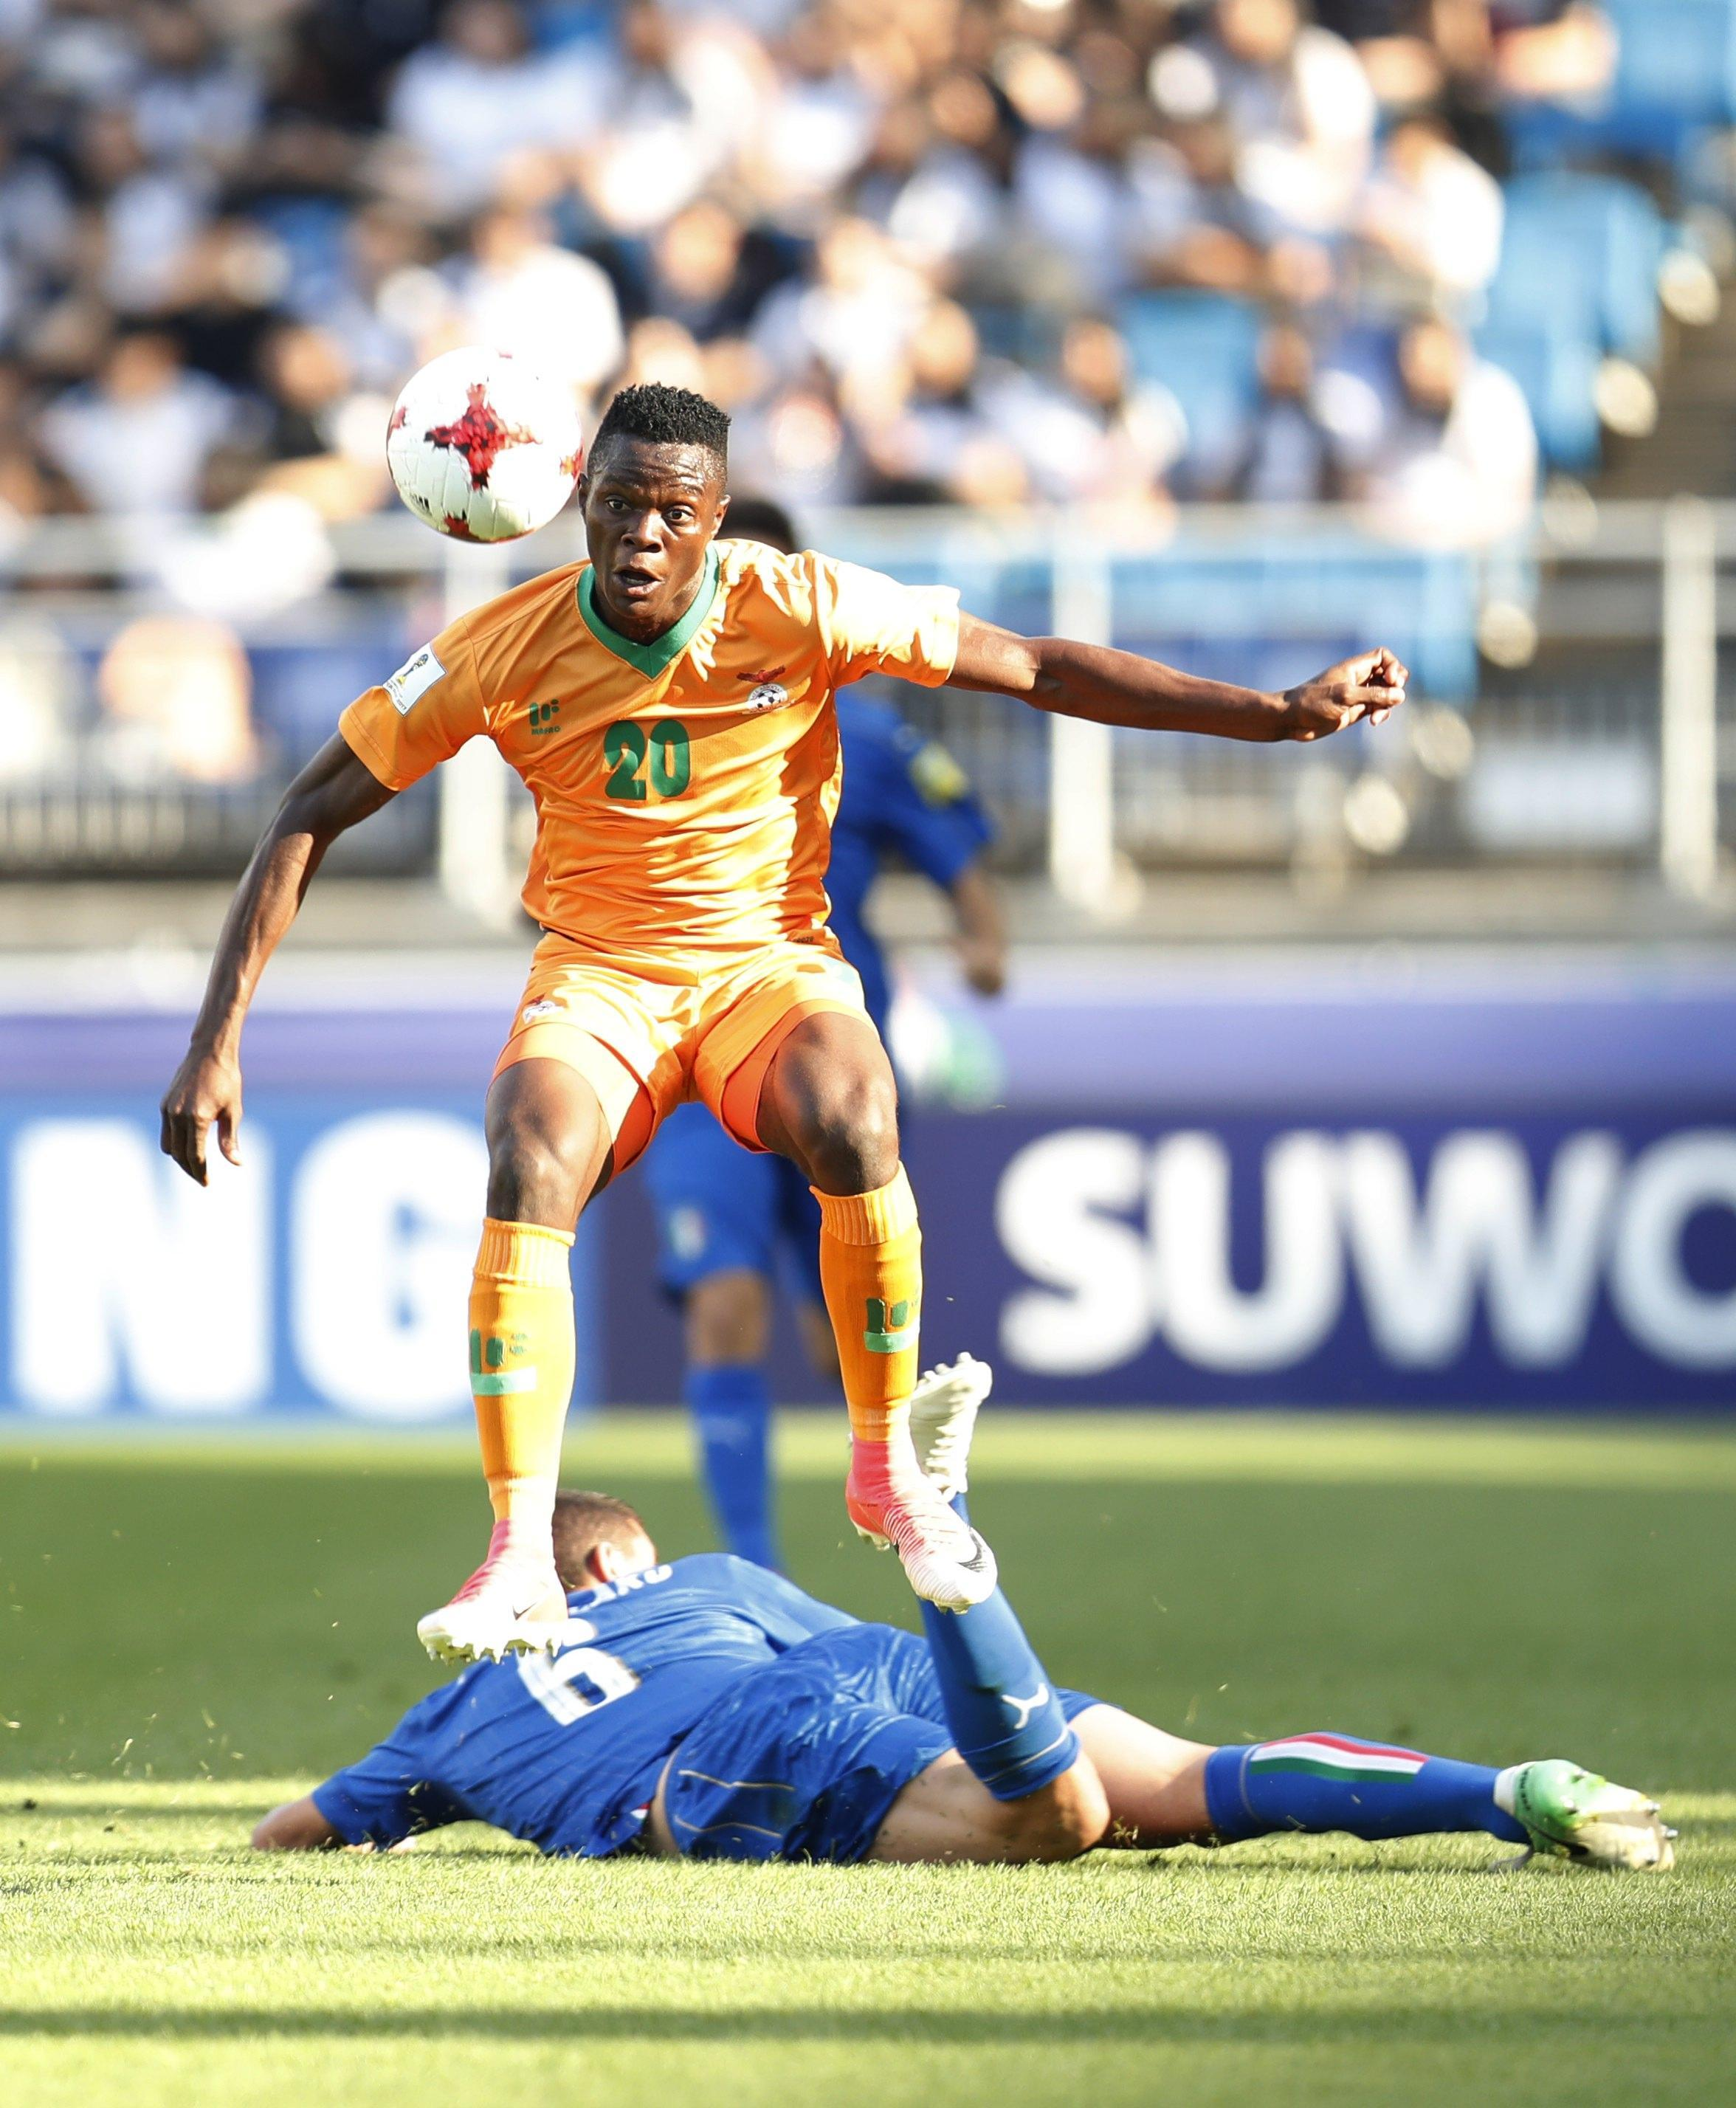 epa06011398 Patson Daka (top) of Zambia vies for the ball with Mauro Coppolaro of Italy (bottom) during the quarterfinal match of the FIFA U-20 World Cup 2017 between Italy and Zambia in Suwon World Cup Stadium, South Korea, 05 June 2017. EPA/JEON HEON-KYUN